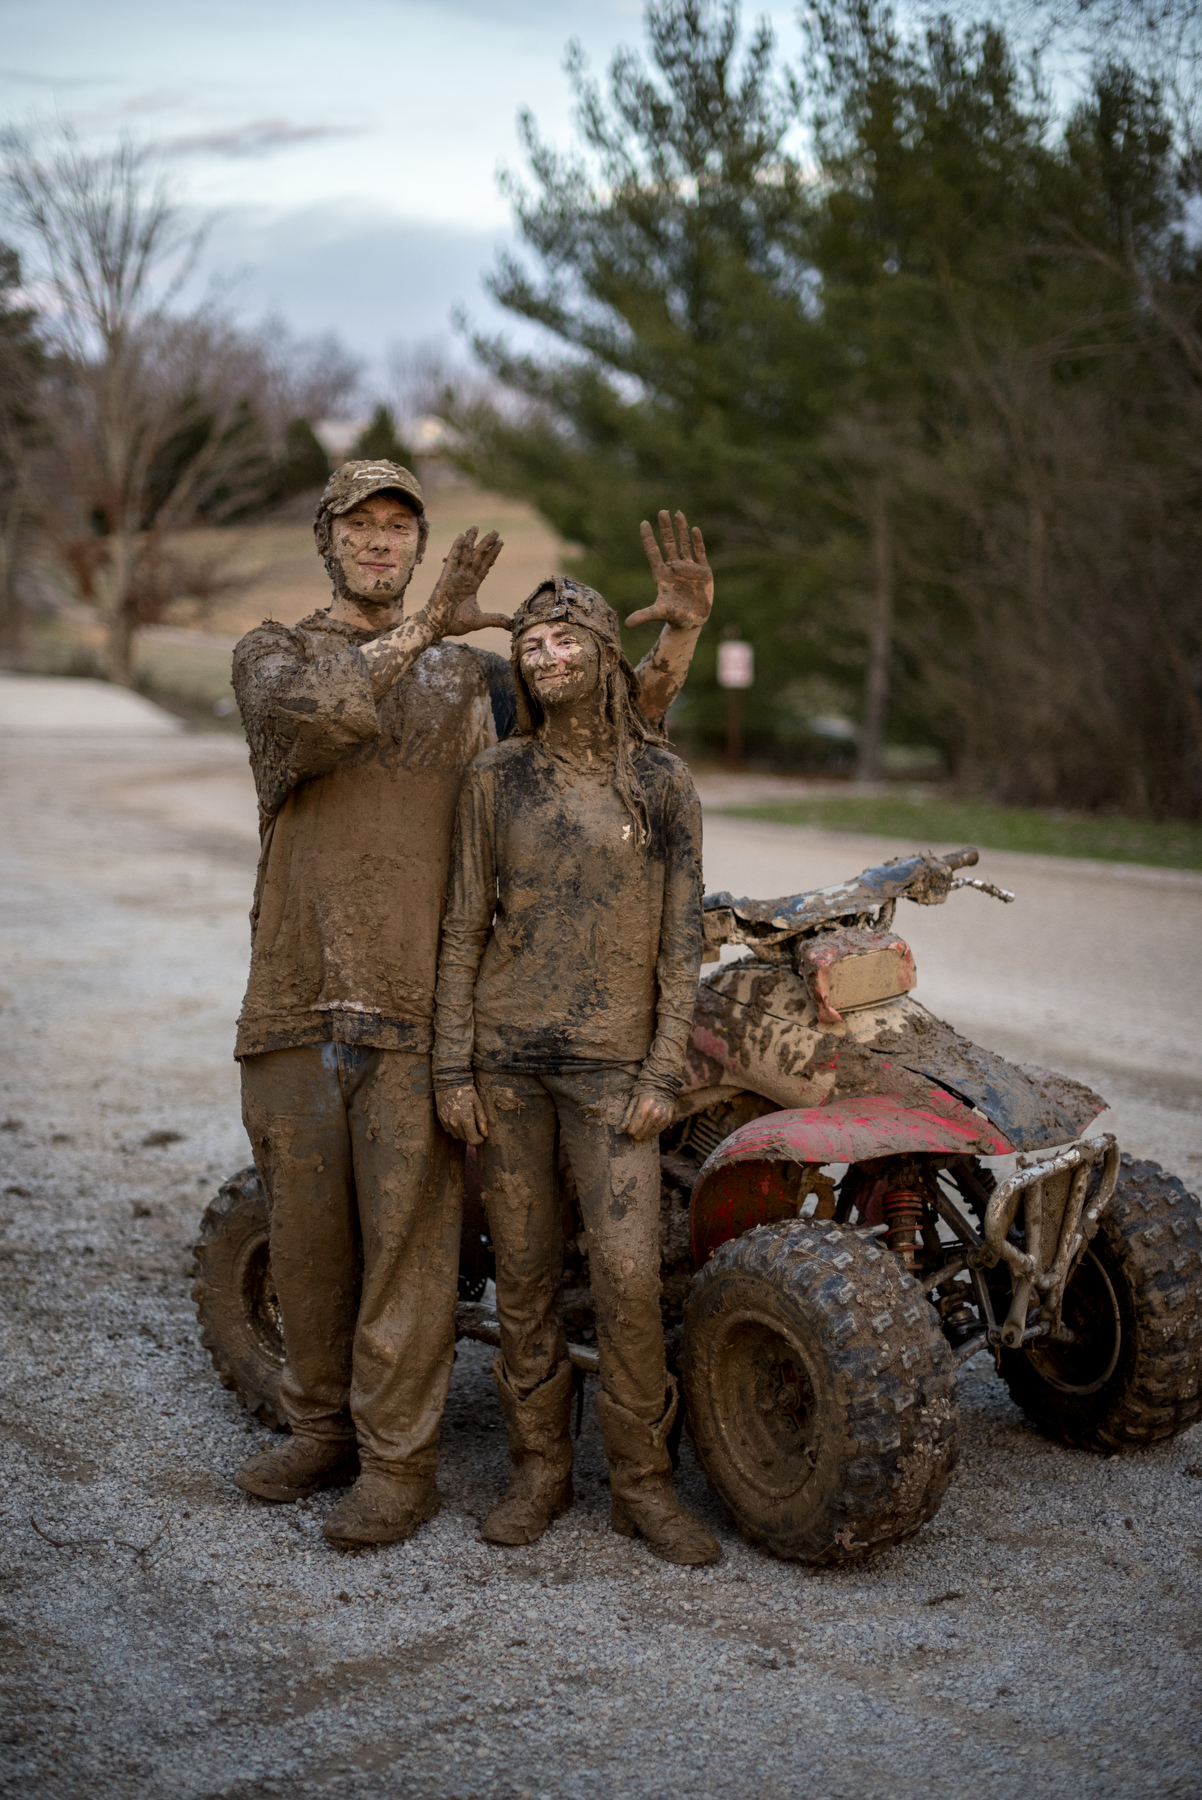 Cameron Powell and Ivy Meeks stand in the parking lot of the Shade Community Center after a mud fight in the woods in Shade, Ohio on Feb. 23, 2017.